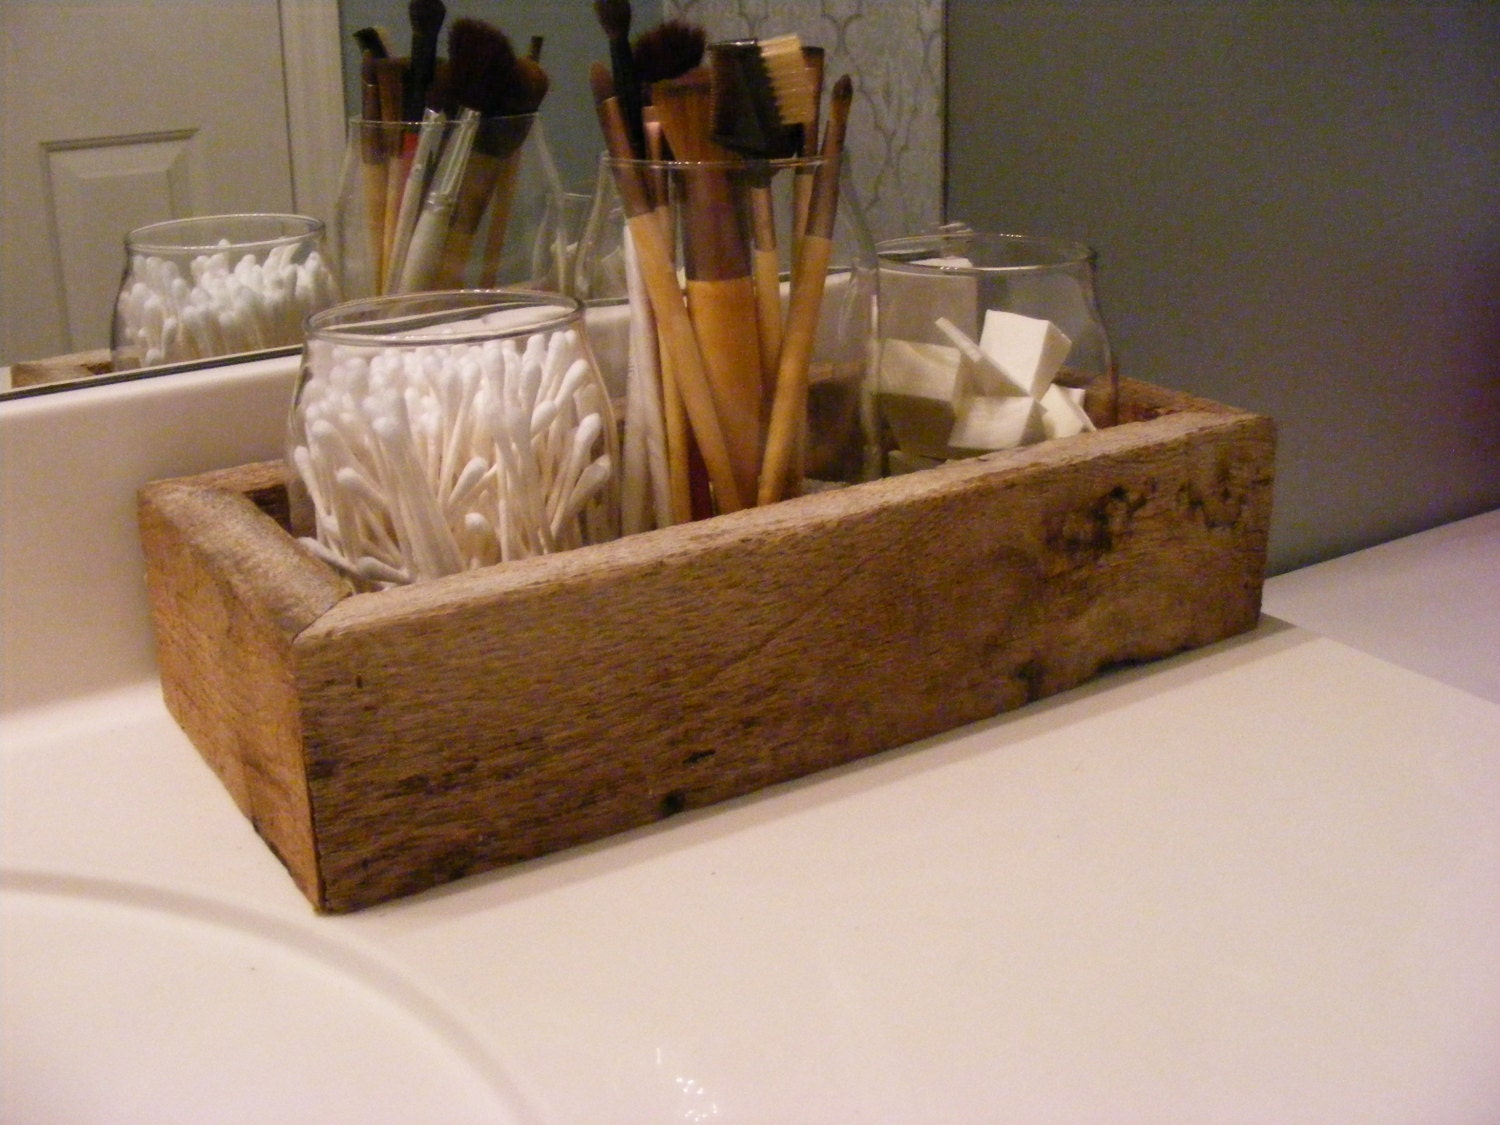 barnwood bathroom organizer rustic bathroom decor rustic